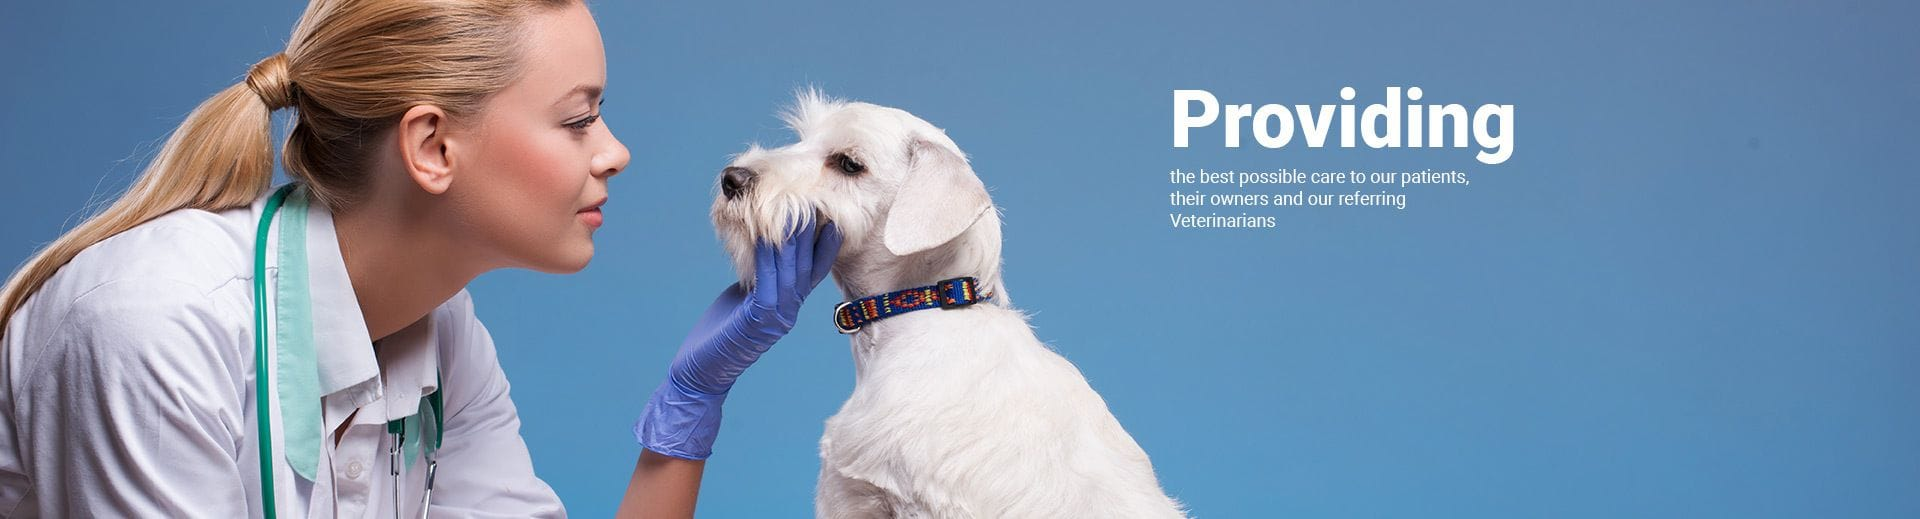 VSS provides the best possible care to our patients, owners and referring vets